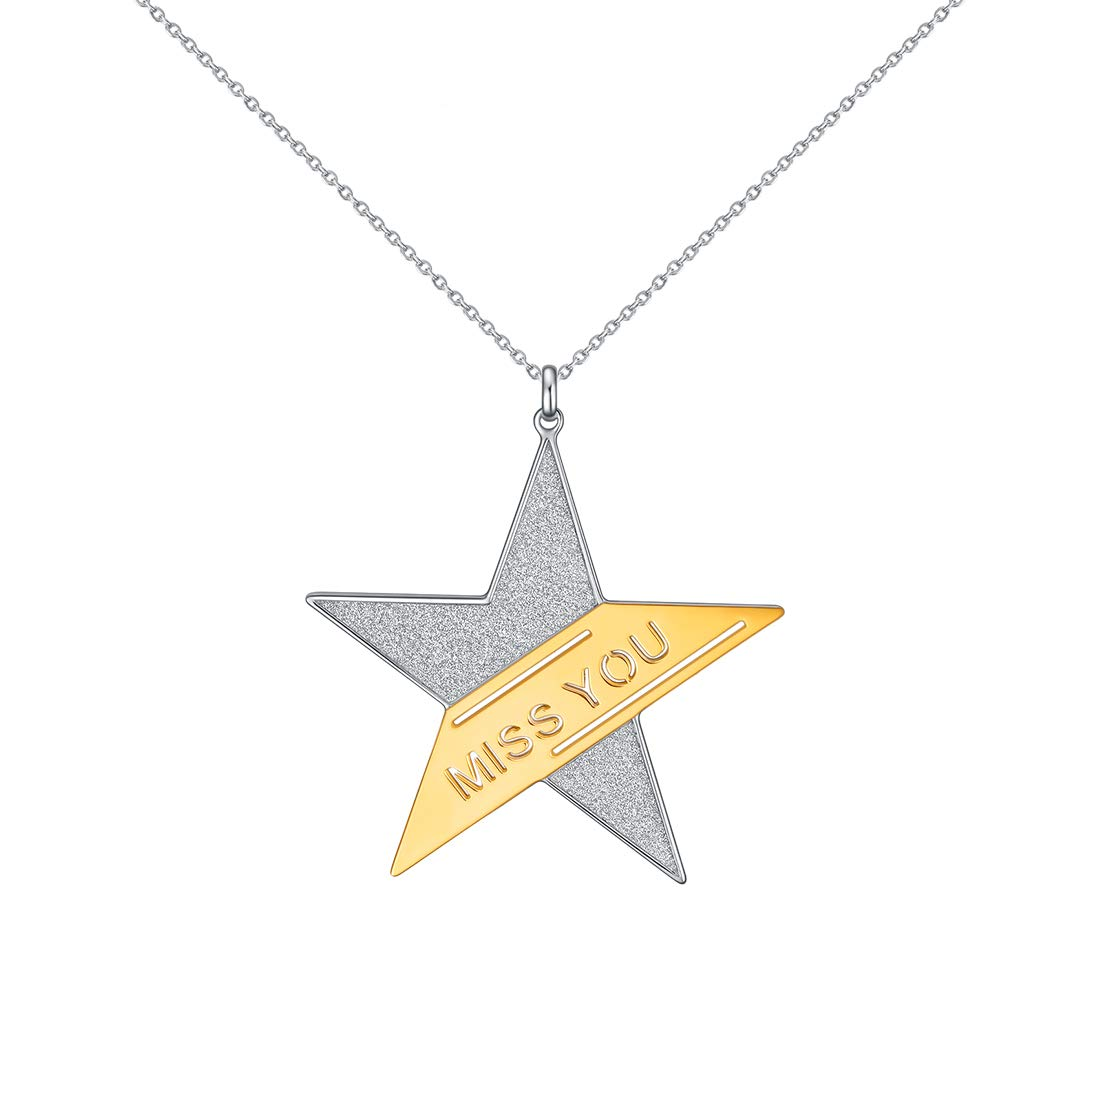 E Round Pendant Necklace Disc Necklace for Women Rose Gold-Plated Natural Shell/Sun & Star Layered Necklace